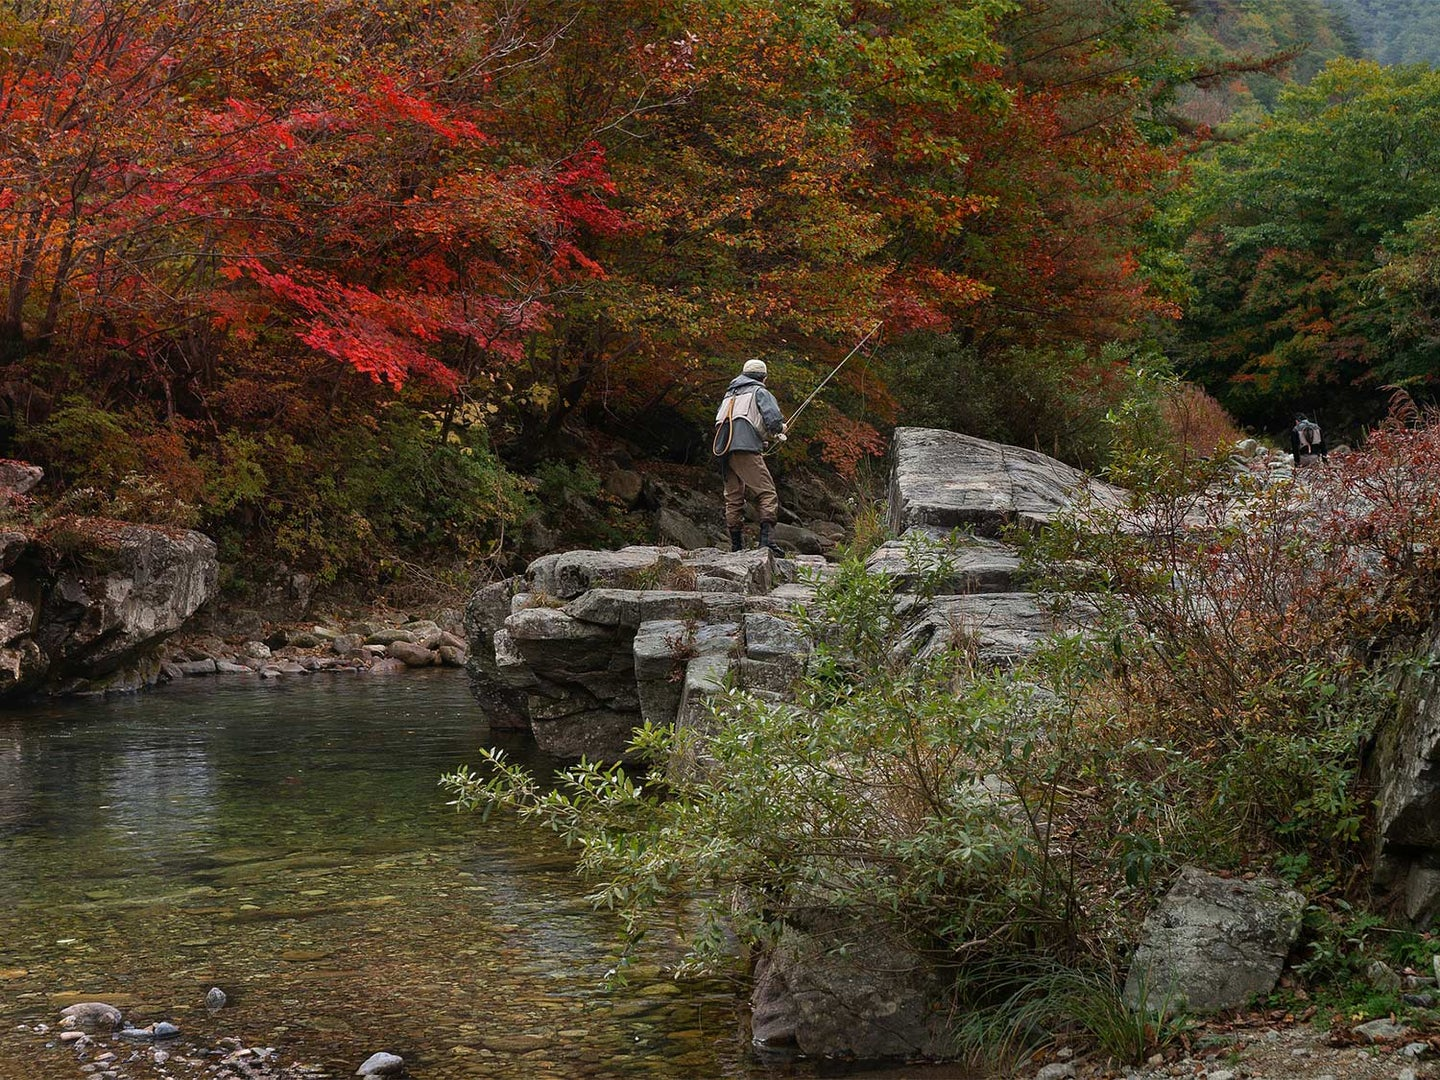 An angler stands on a rocky outcrop over a stream.